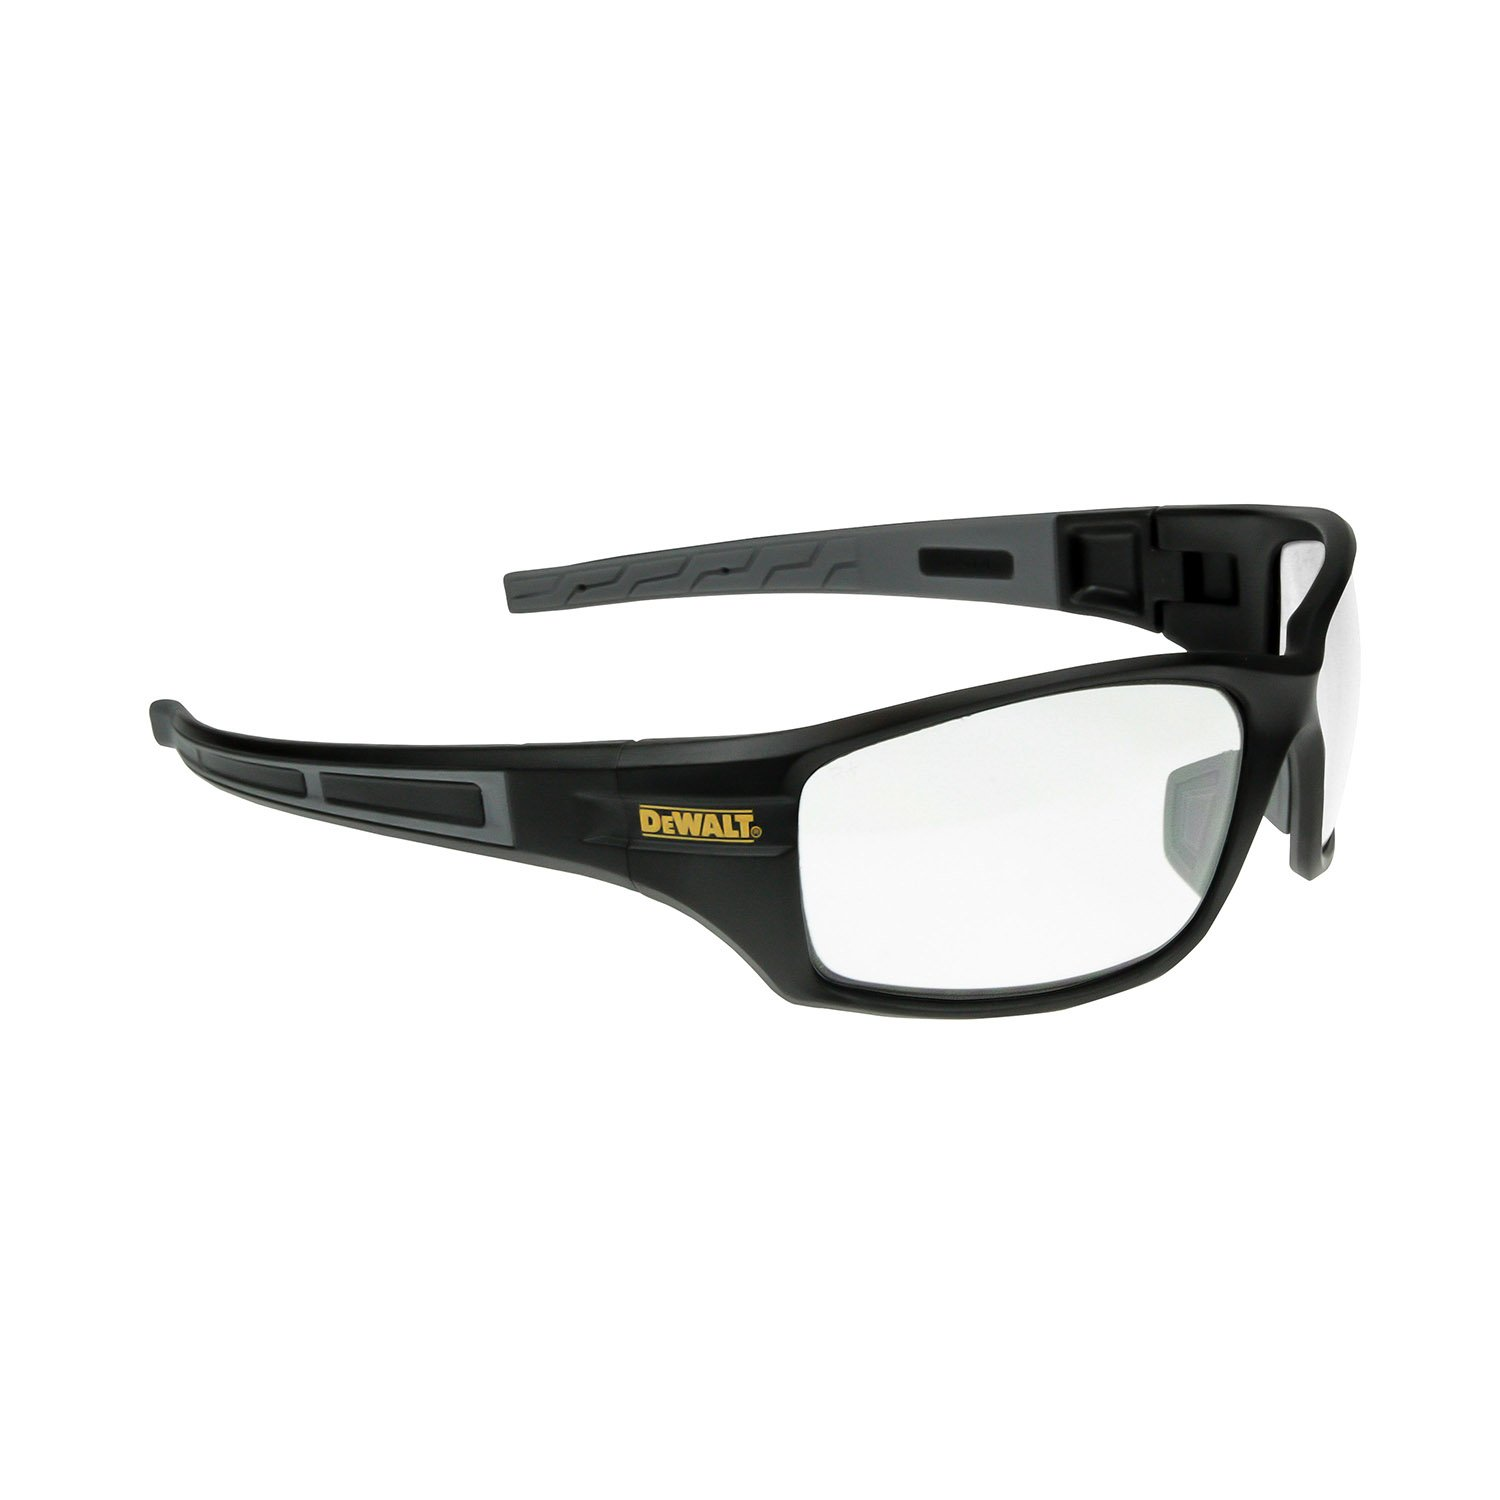 DeWalt DPG101-1D Auger SAFETY Glasses - Clear Lens (1 Pairper Pack)